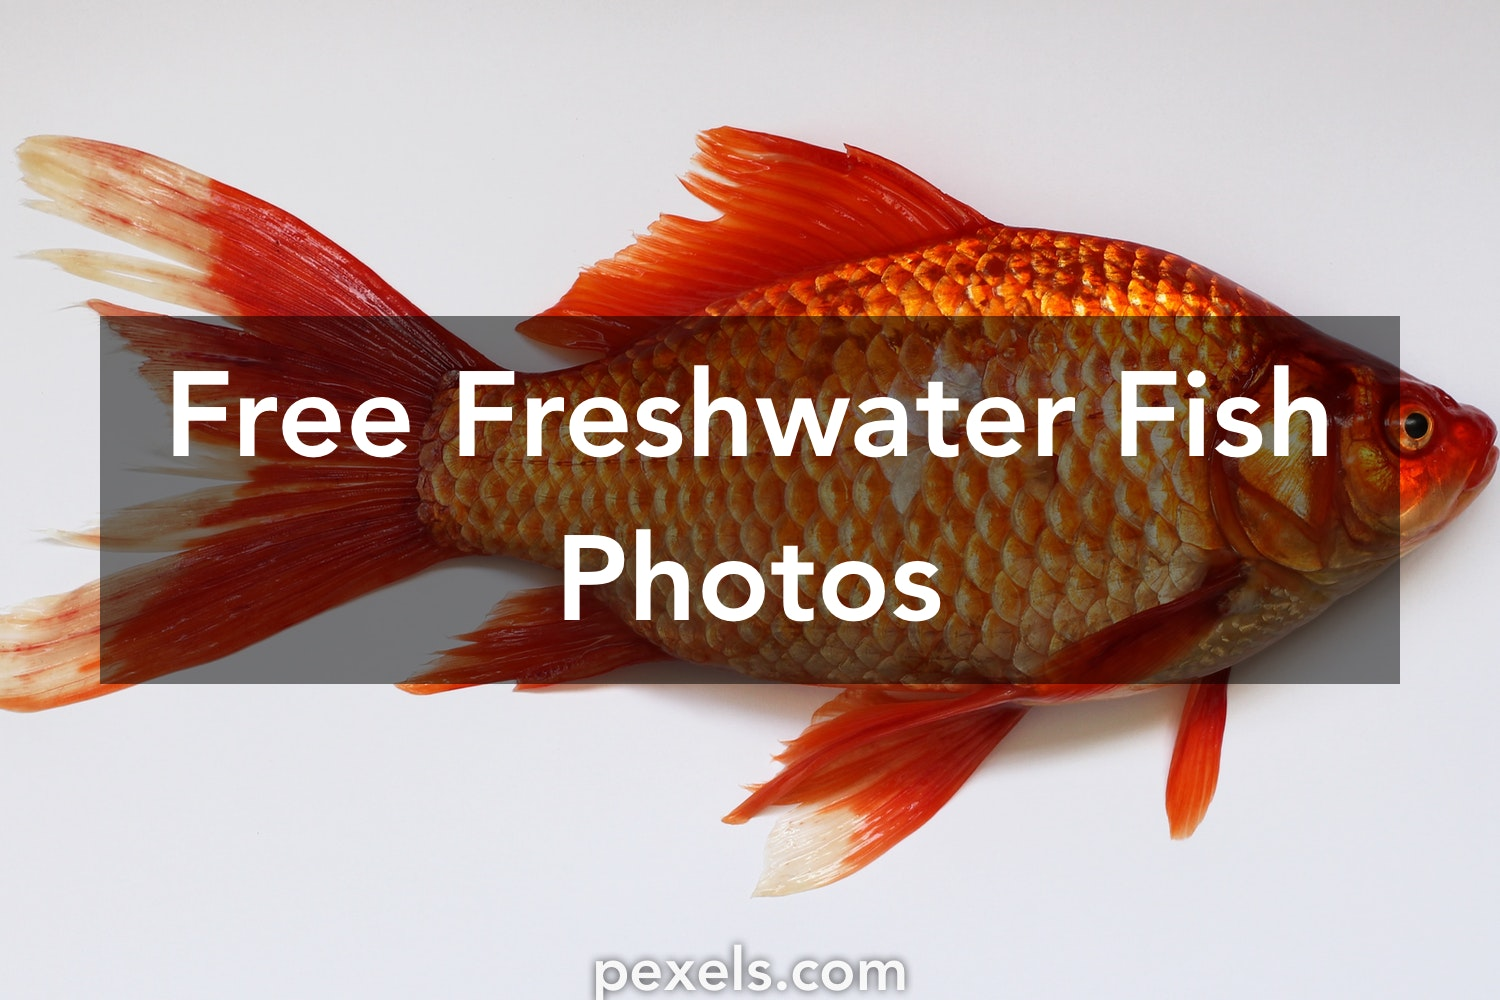 250+ Beautiful Freshwater Fish Photos · Pexels · Free Stock Photos